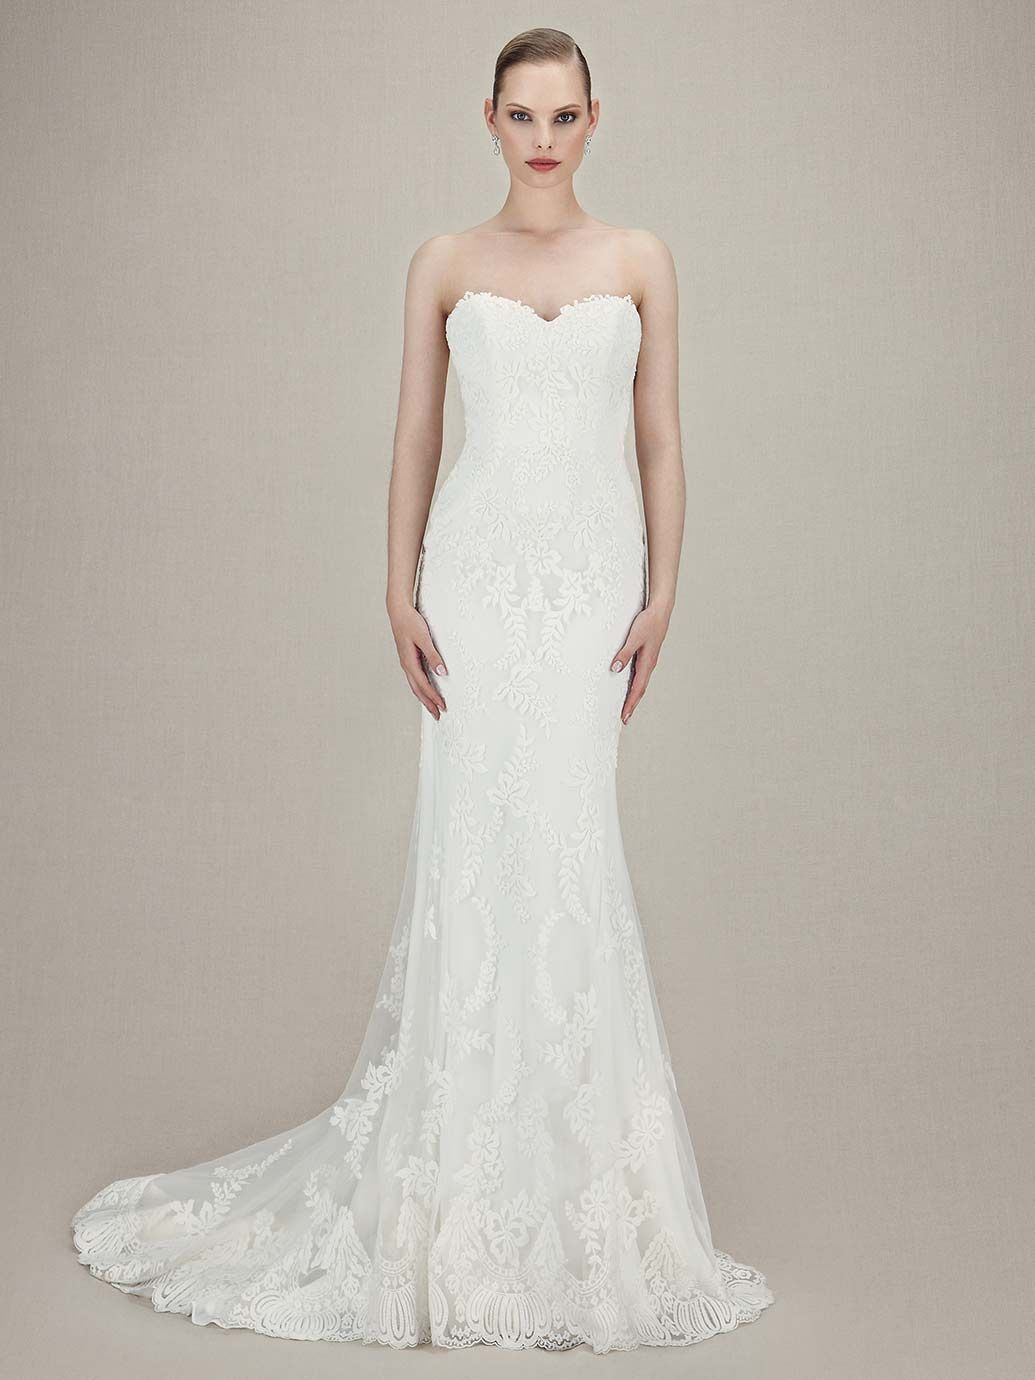 Ball gown wedding dress with bling   Enzoani Karolina Front View  wedding dresses  Pinterest